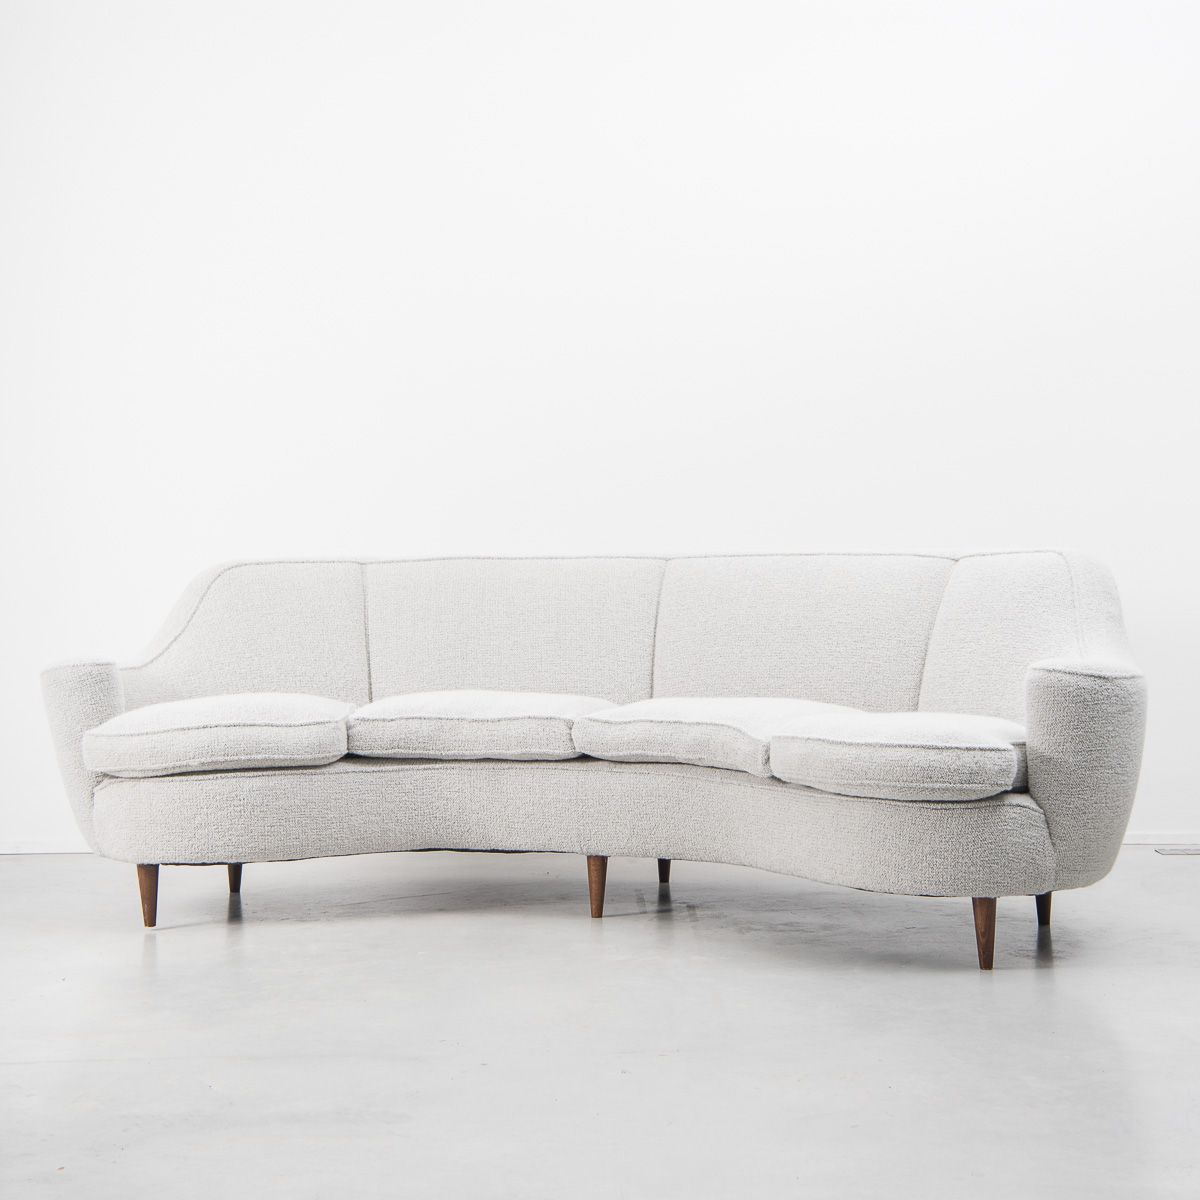 canap courb mid century italie 1950s - Canape Courbe